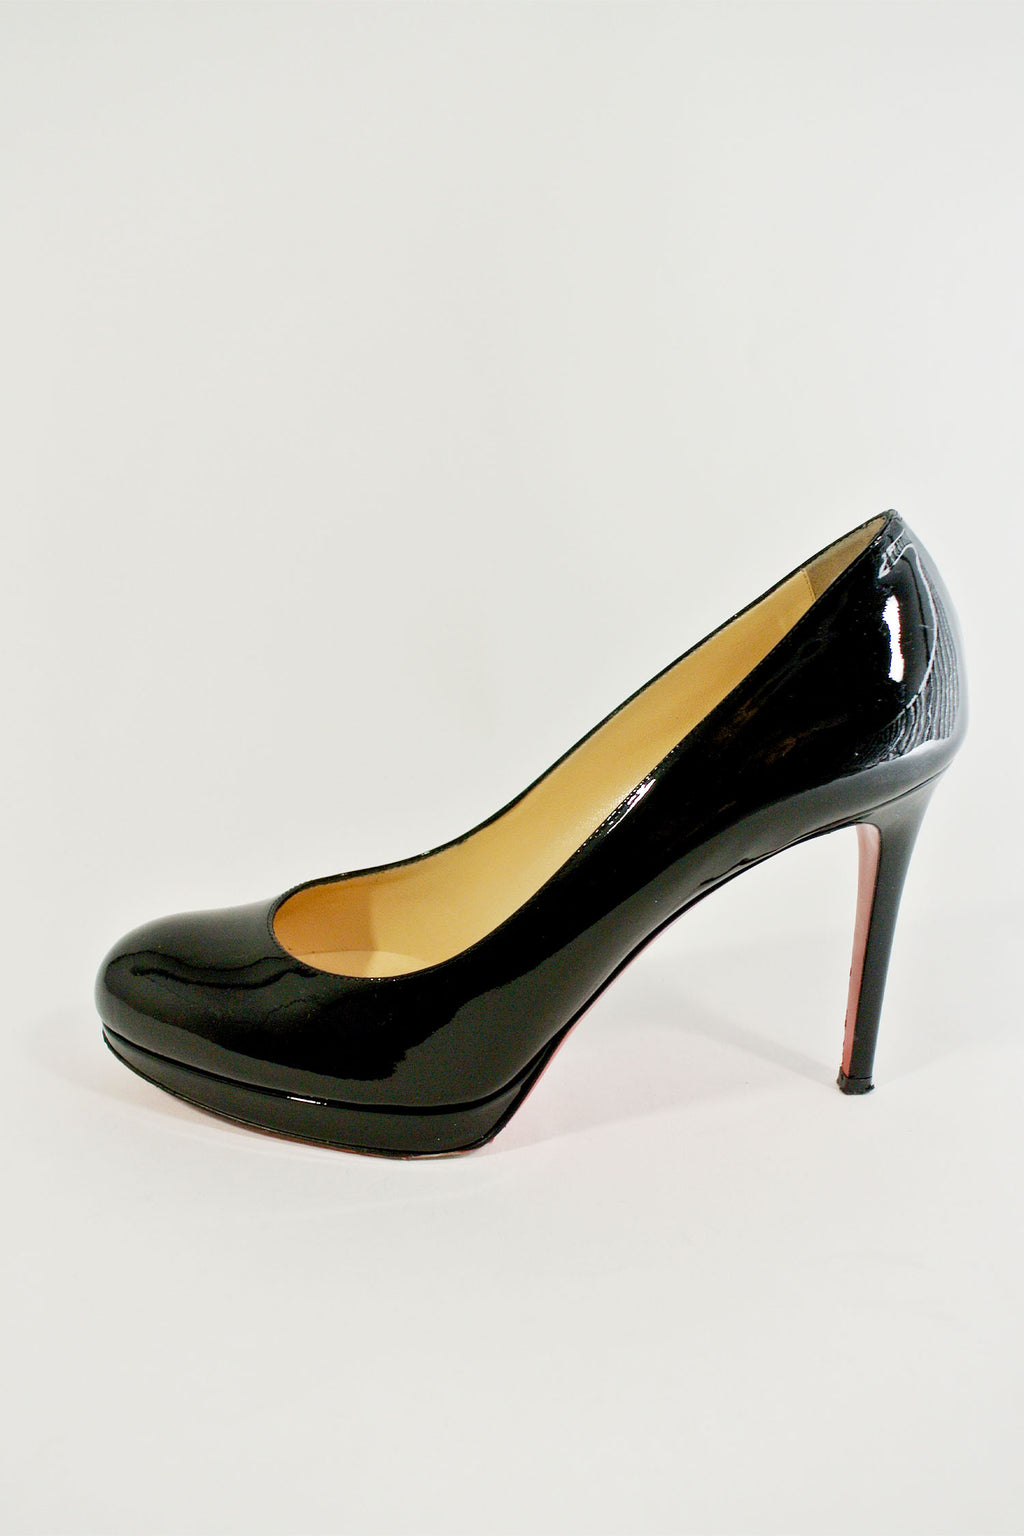 Christian Louboutin New Simple Pump sz 38.5